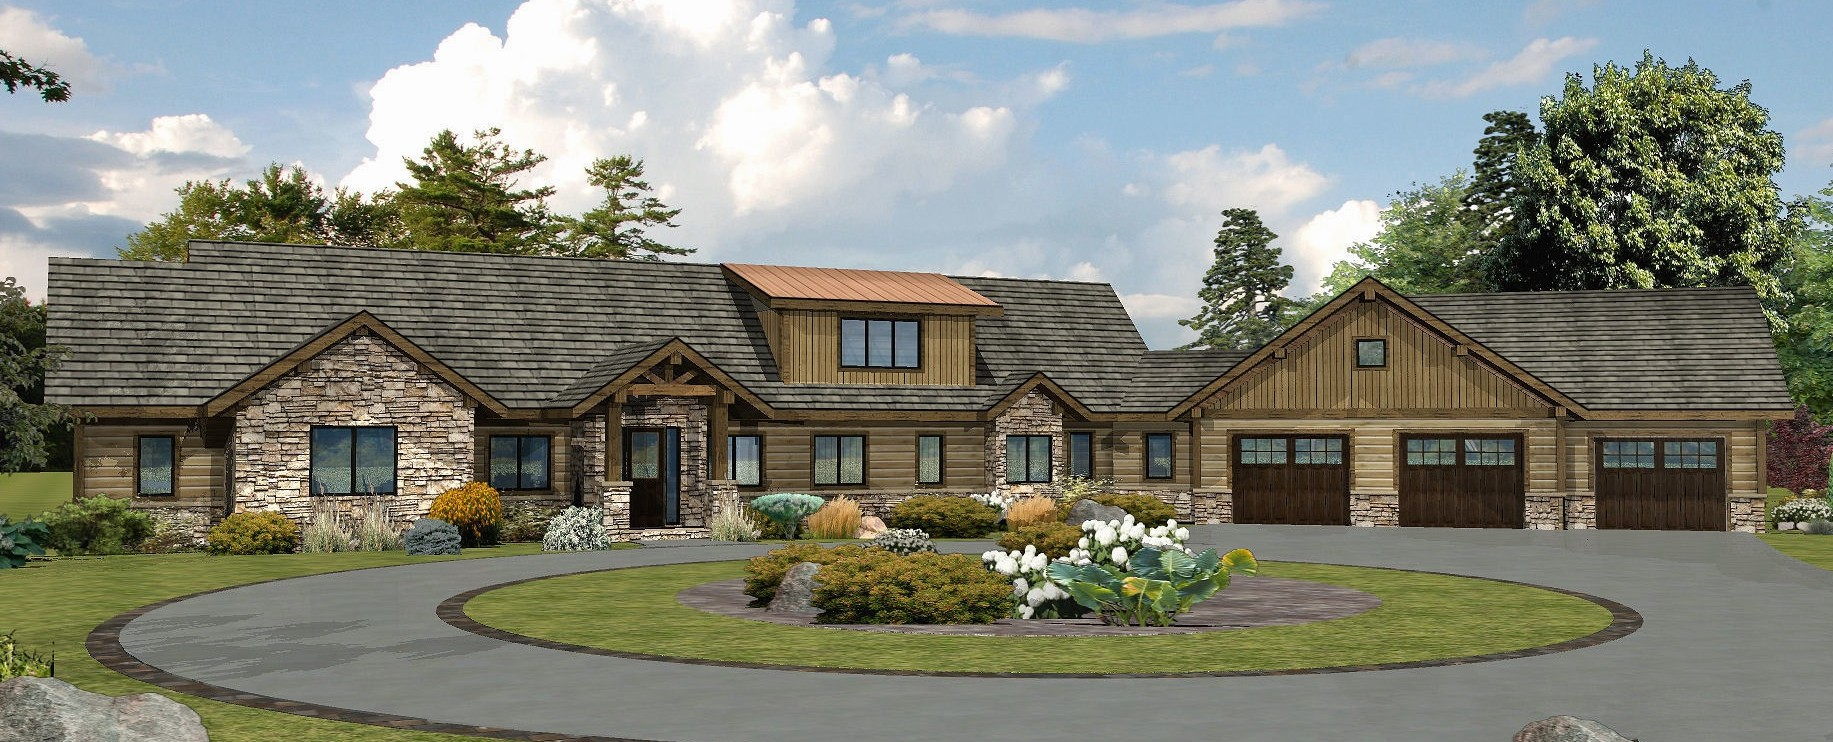 Montero Ranch - Front Rendering Log - Wisconsin Log Homes Inc